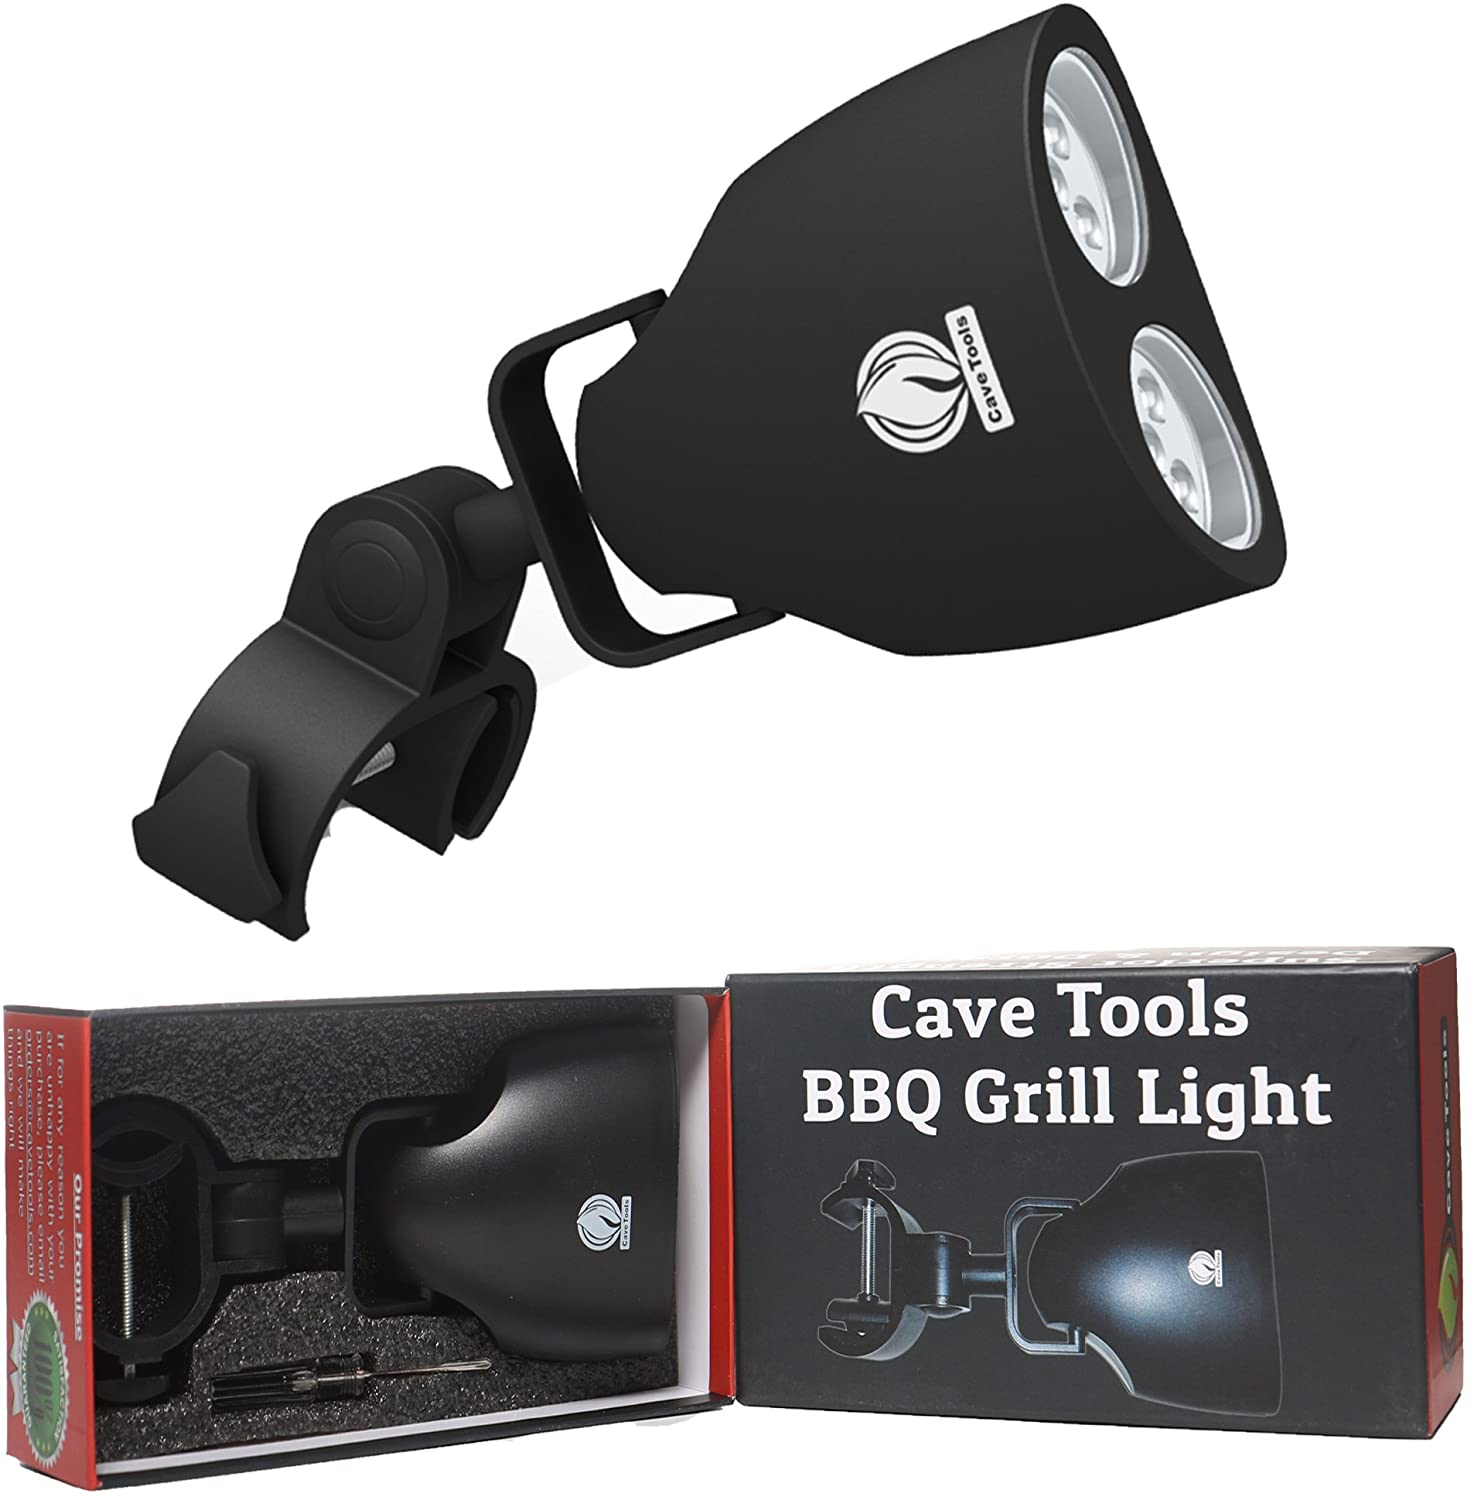 Cave Tools Barbecue Grill Light